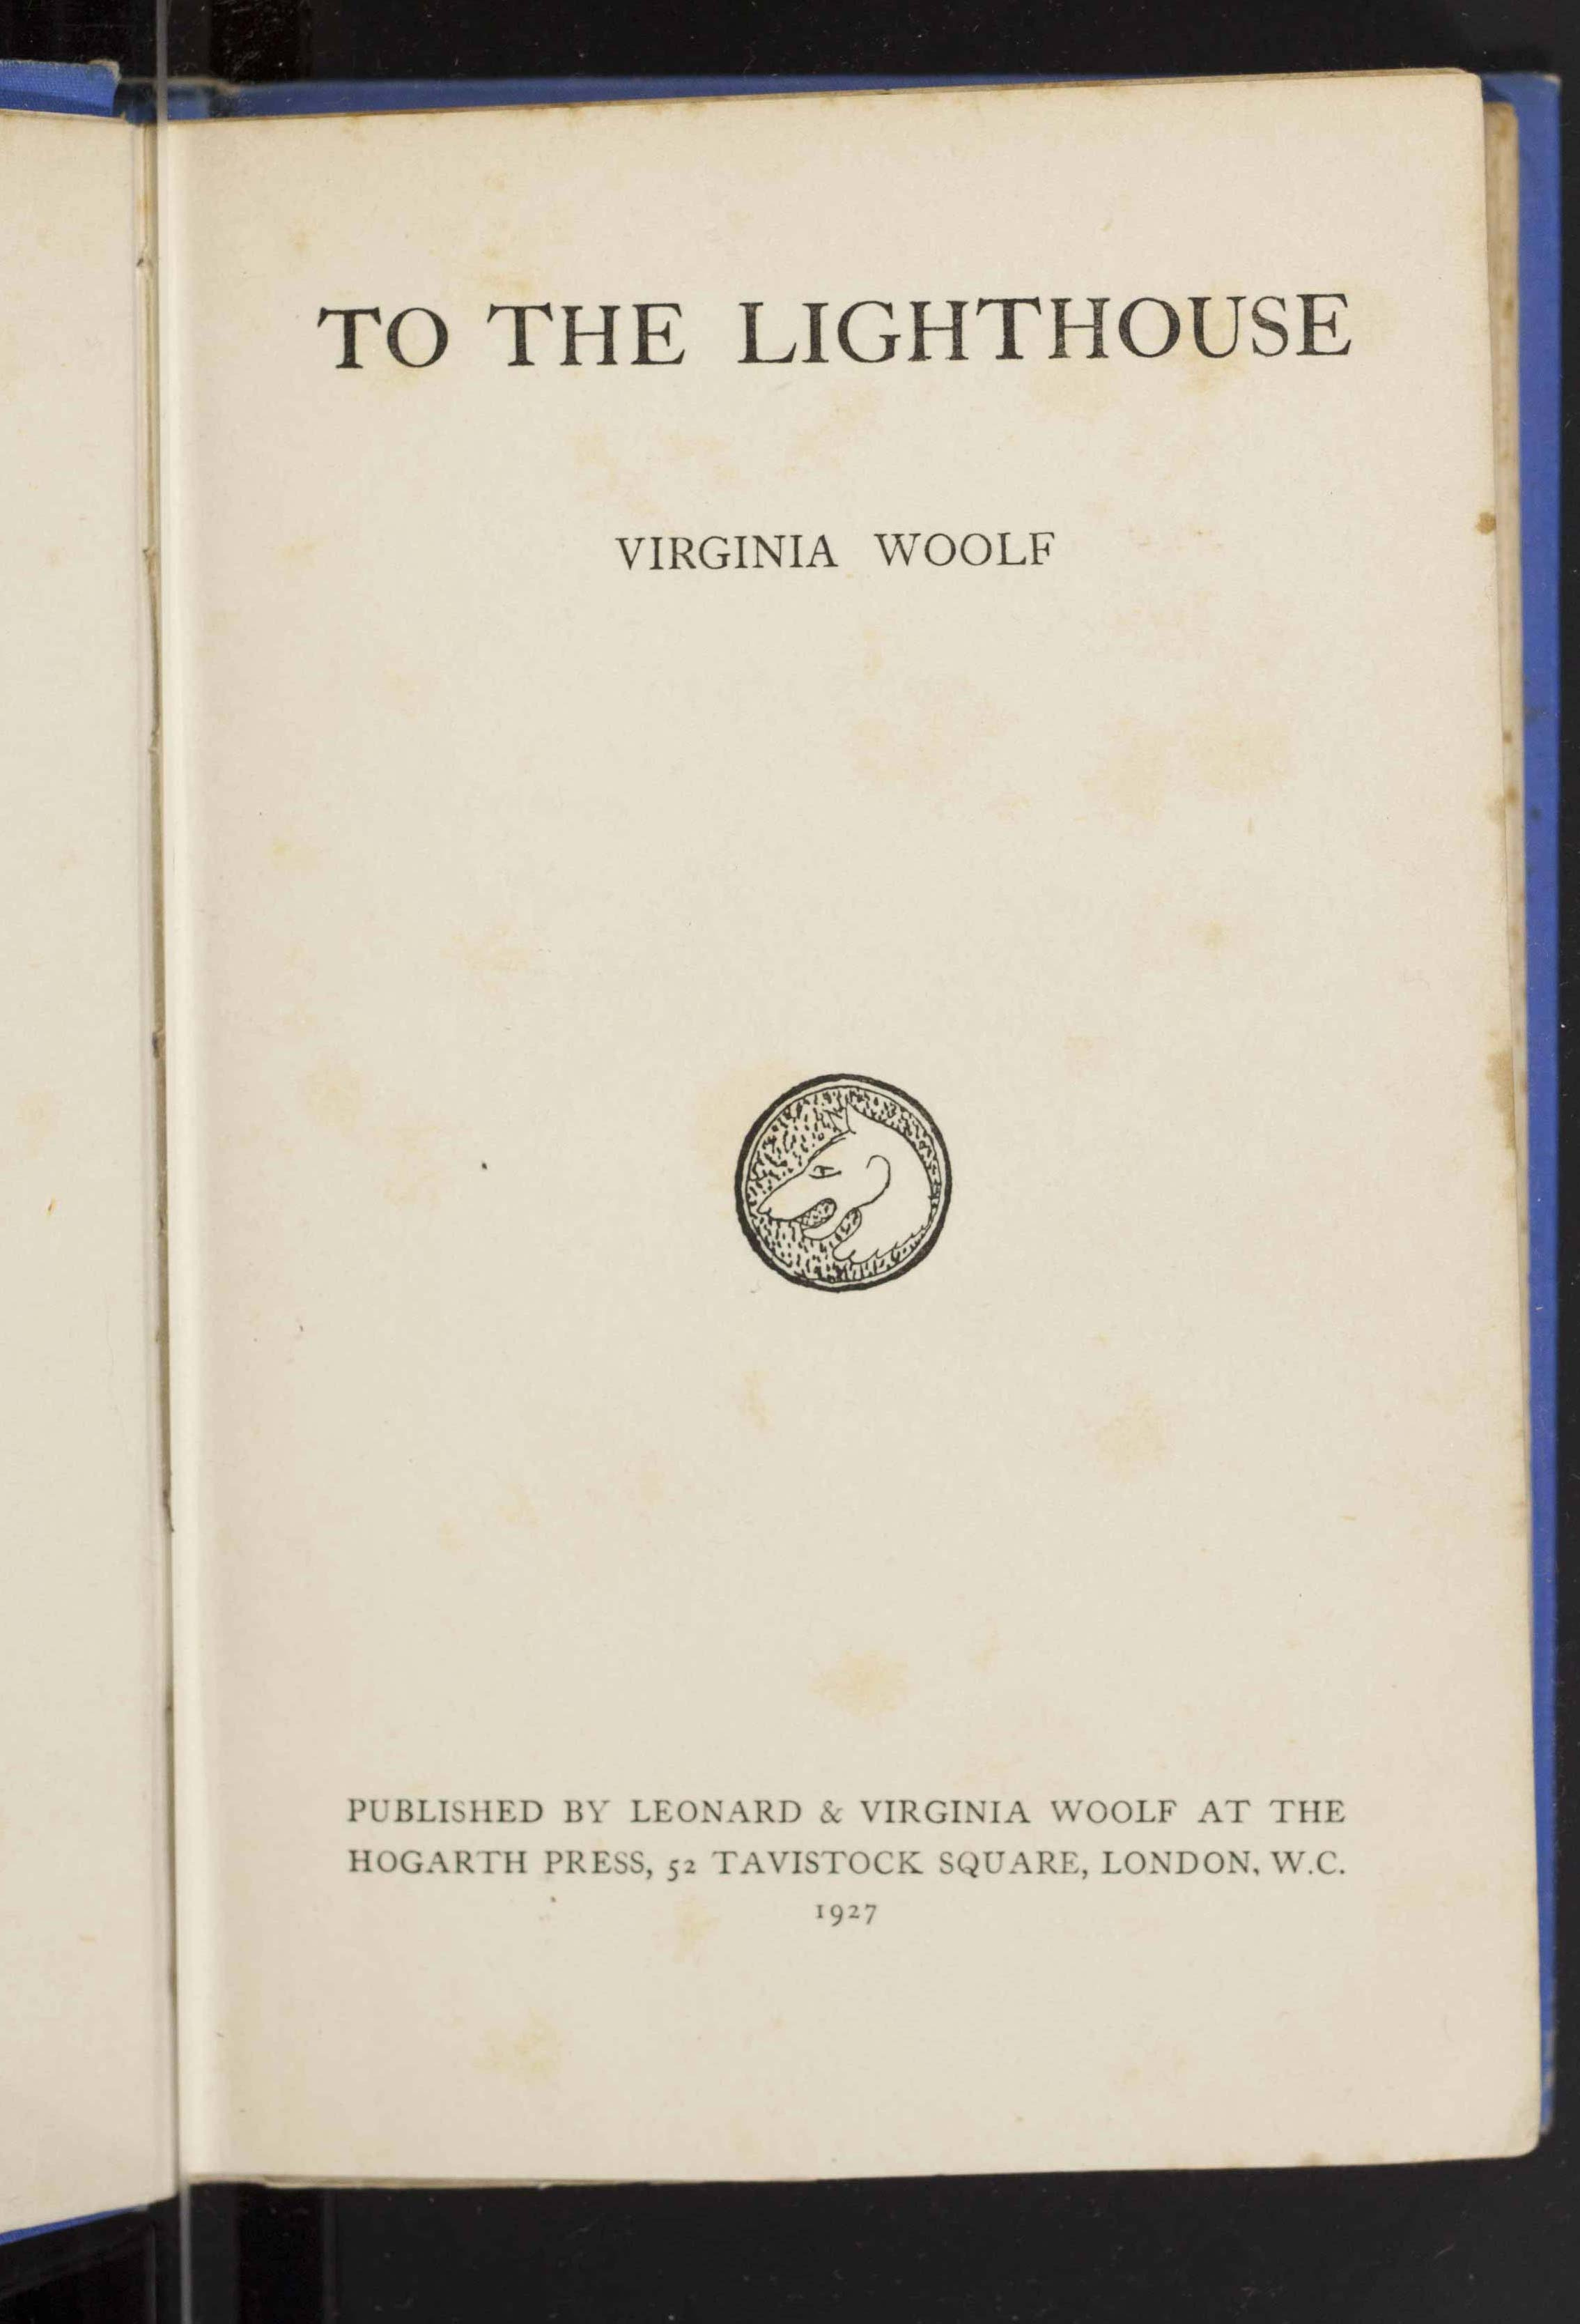 critical essays on virginia woolf Widely considered one of the finest essayists of the 20th century, virginia woolf composed this essay as a review of ernest rhys's five-volume anthology of modern english essays.